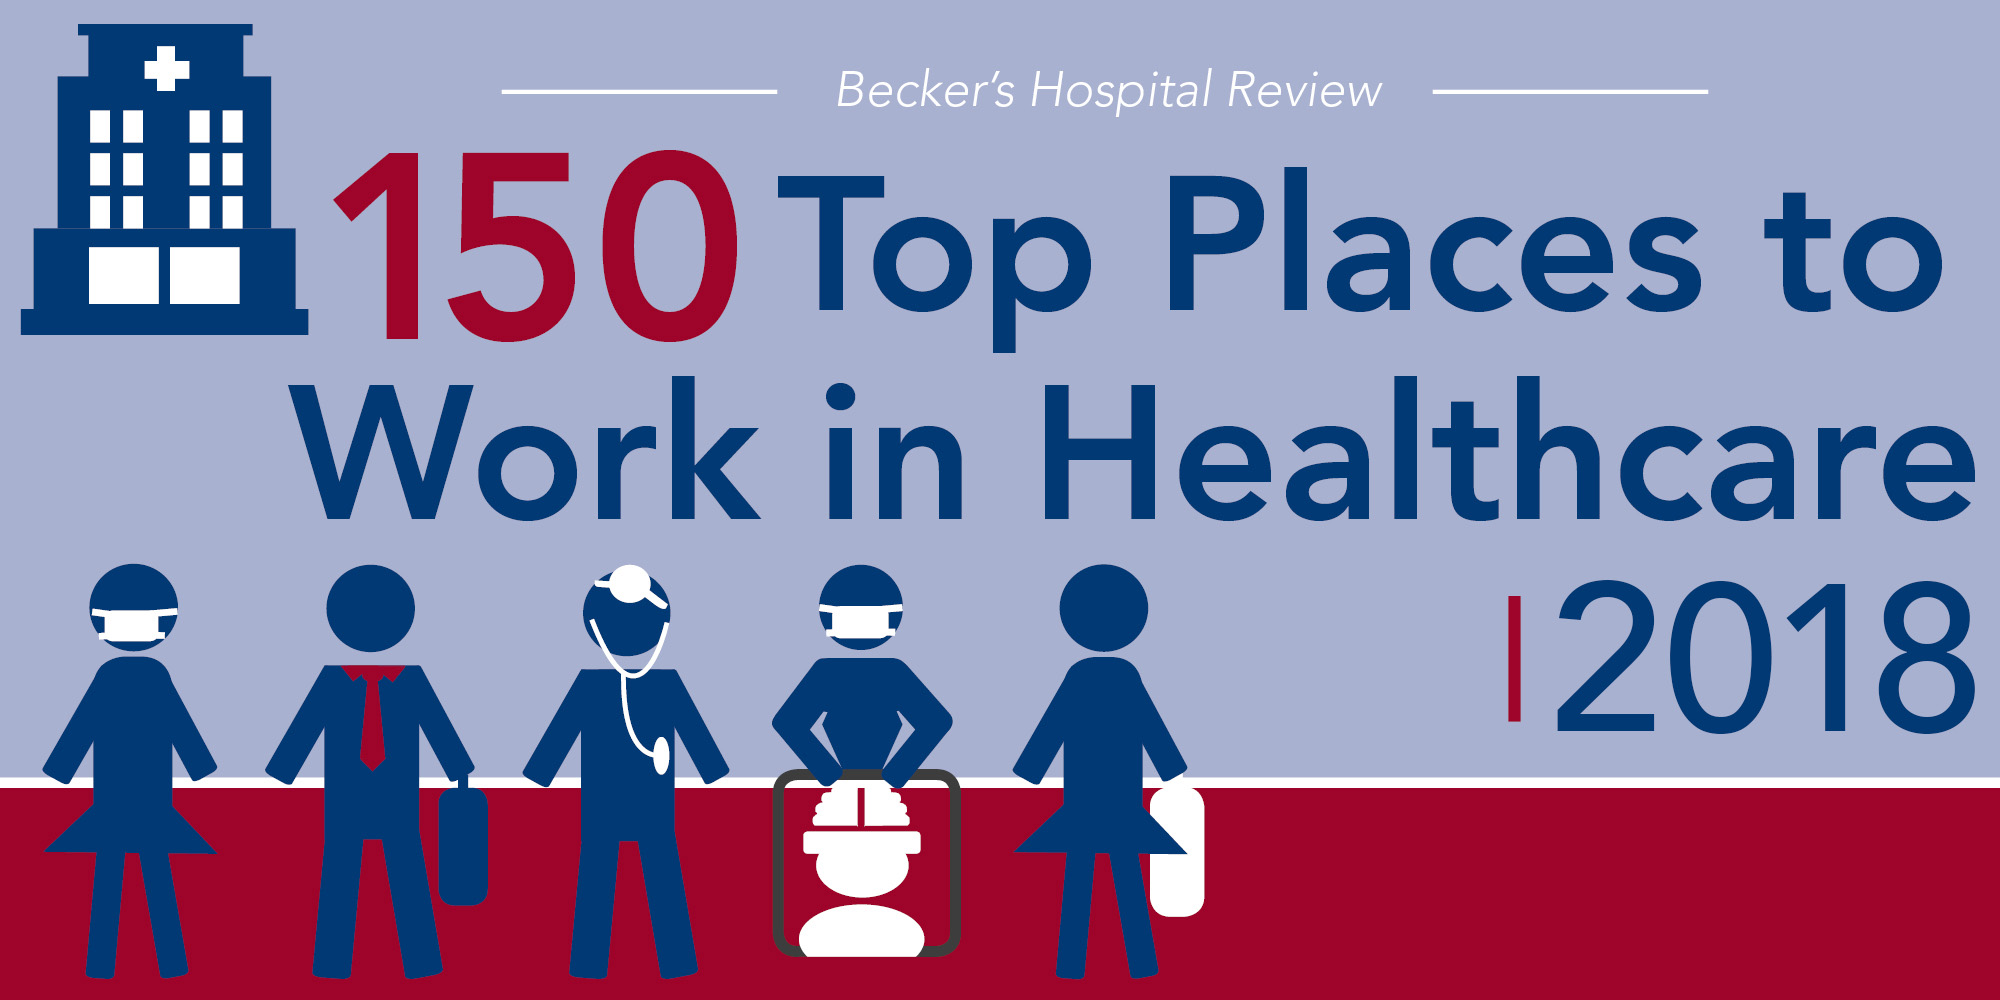 Beckers Top Place to Work 4 years in a row